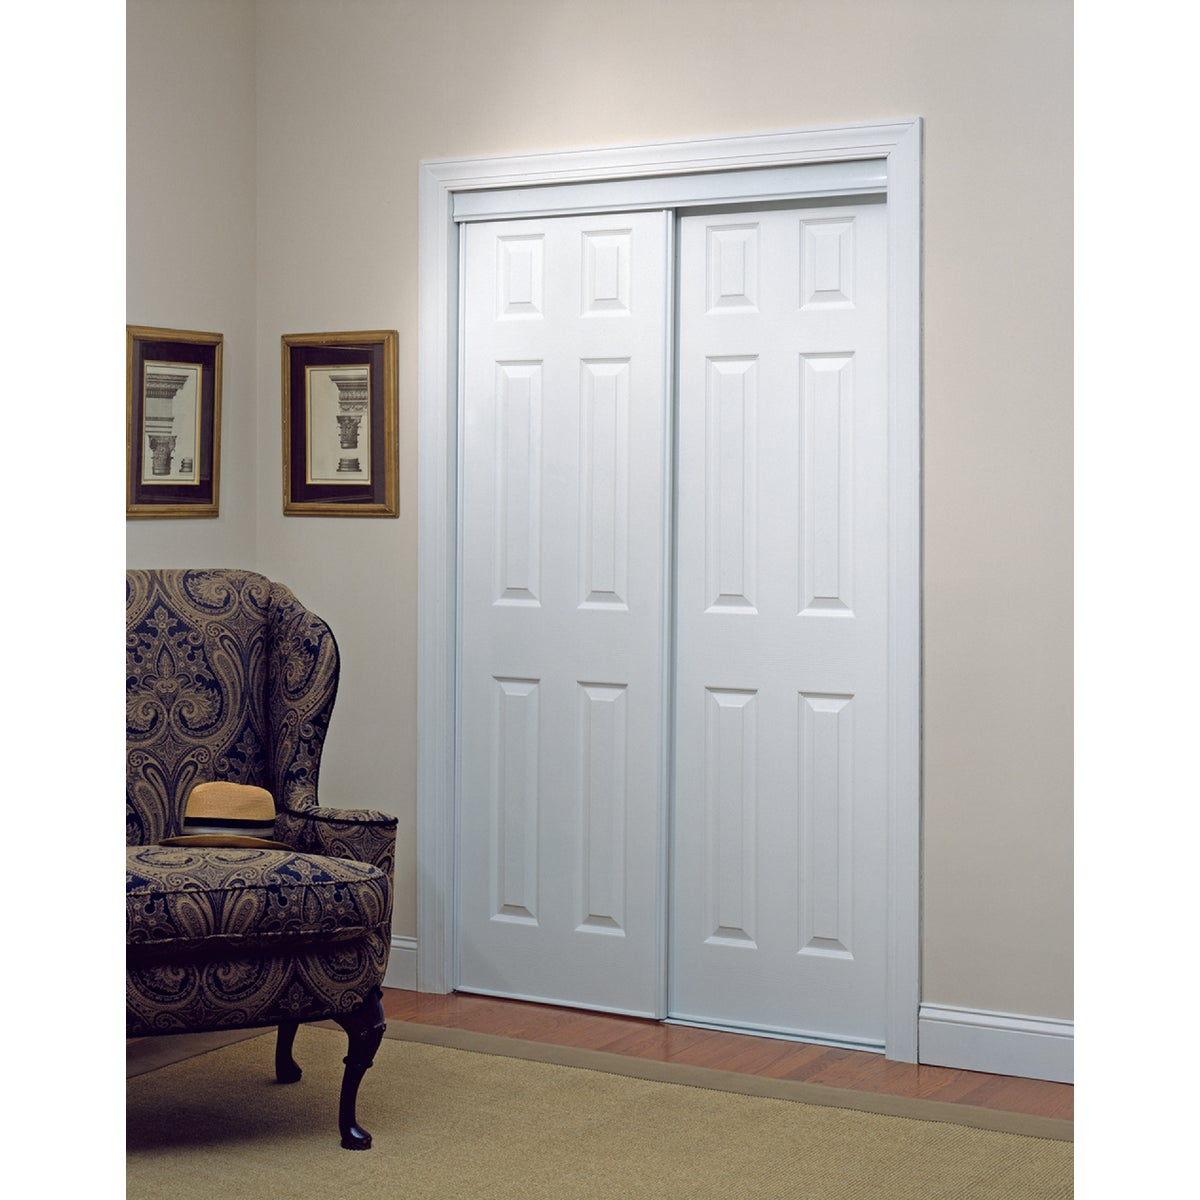 48X80 6-PNL BYPASS DOOR - 240010 by Home Decor Innov